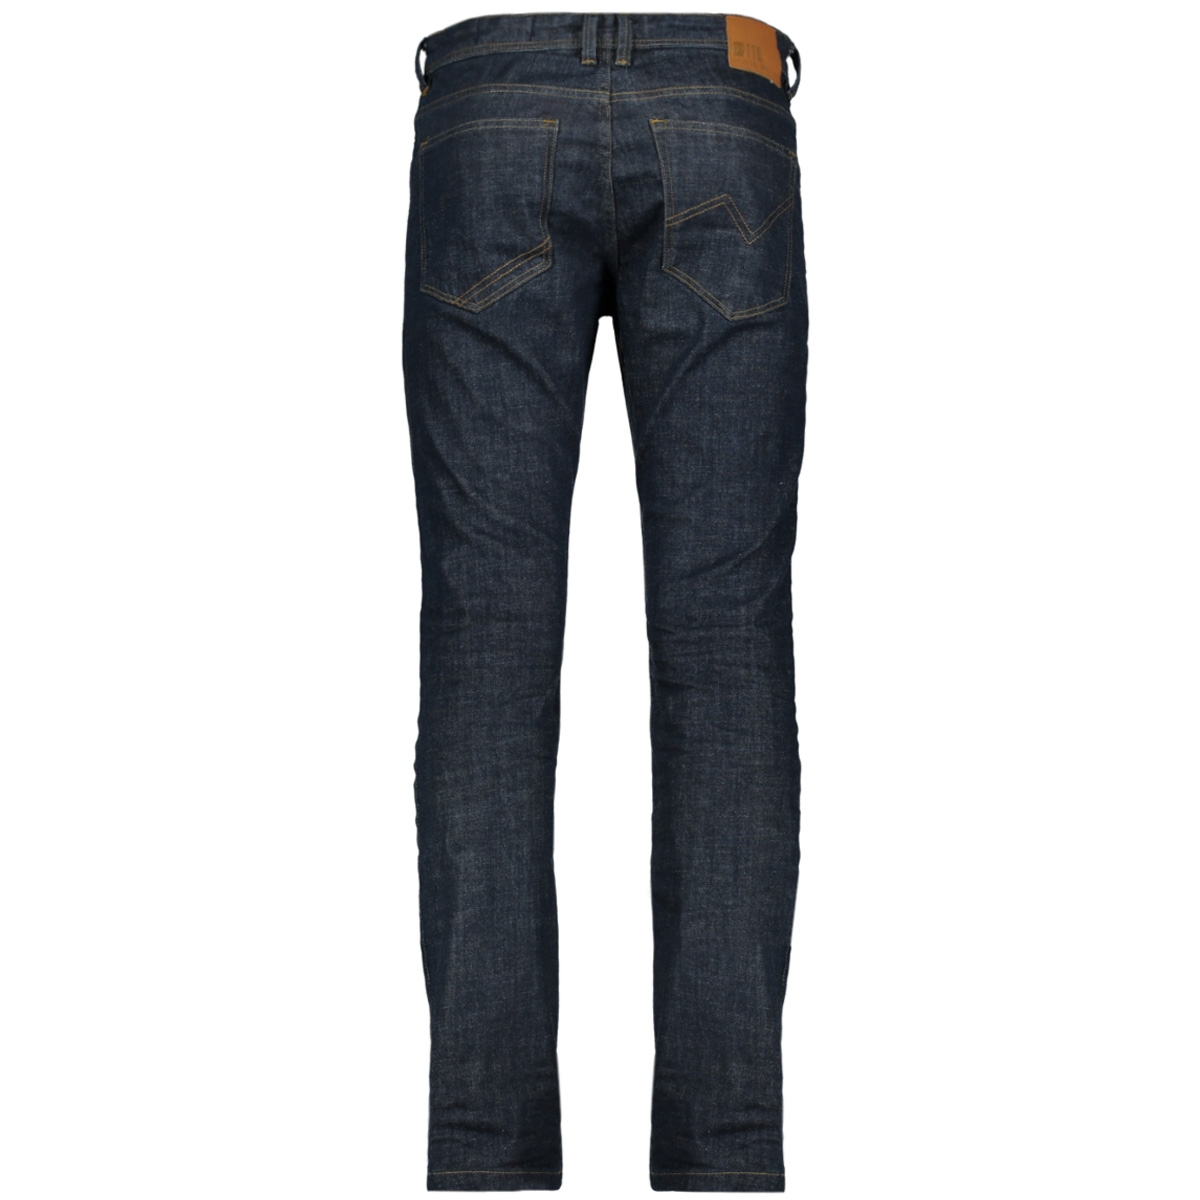 6255044.09.12 tom tailor jeans 1100